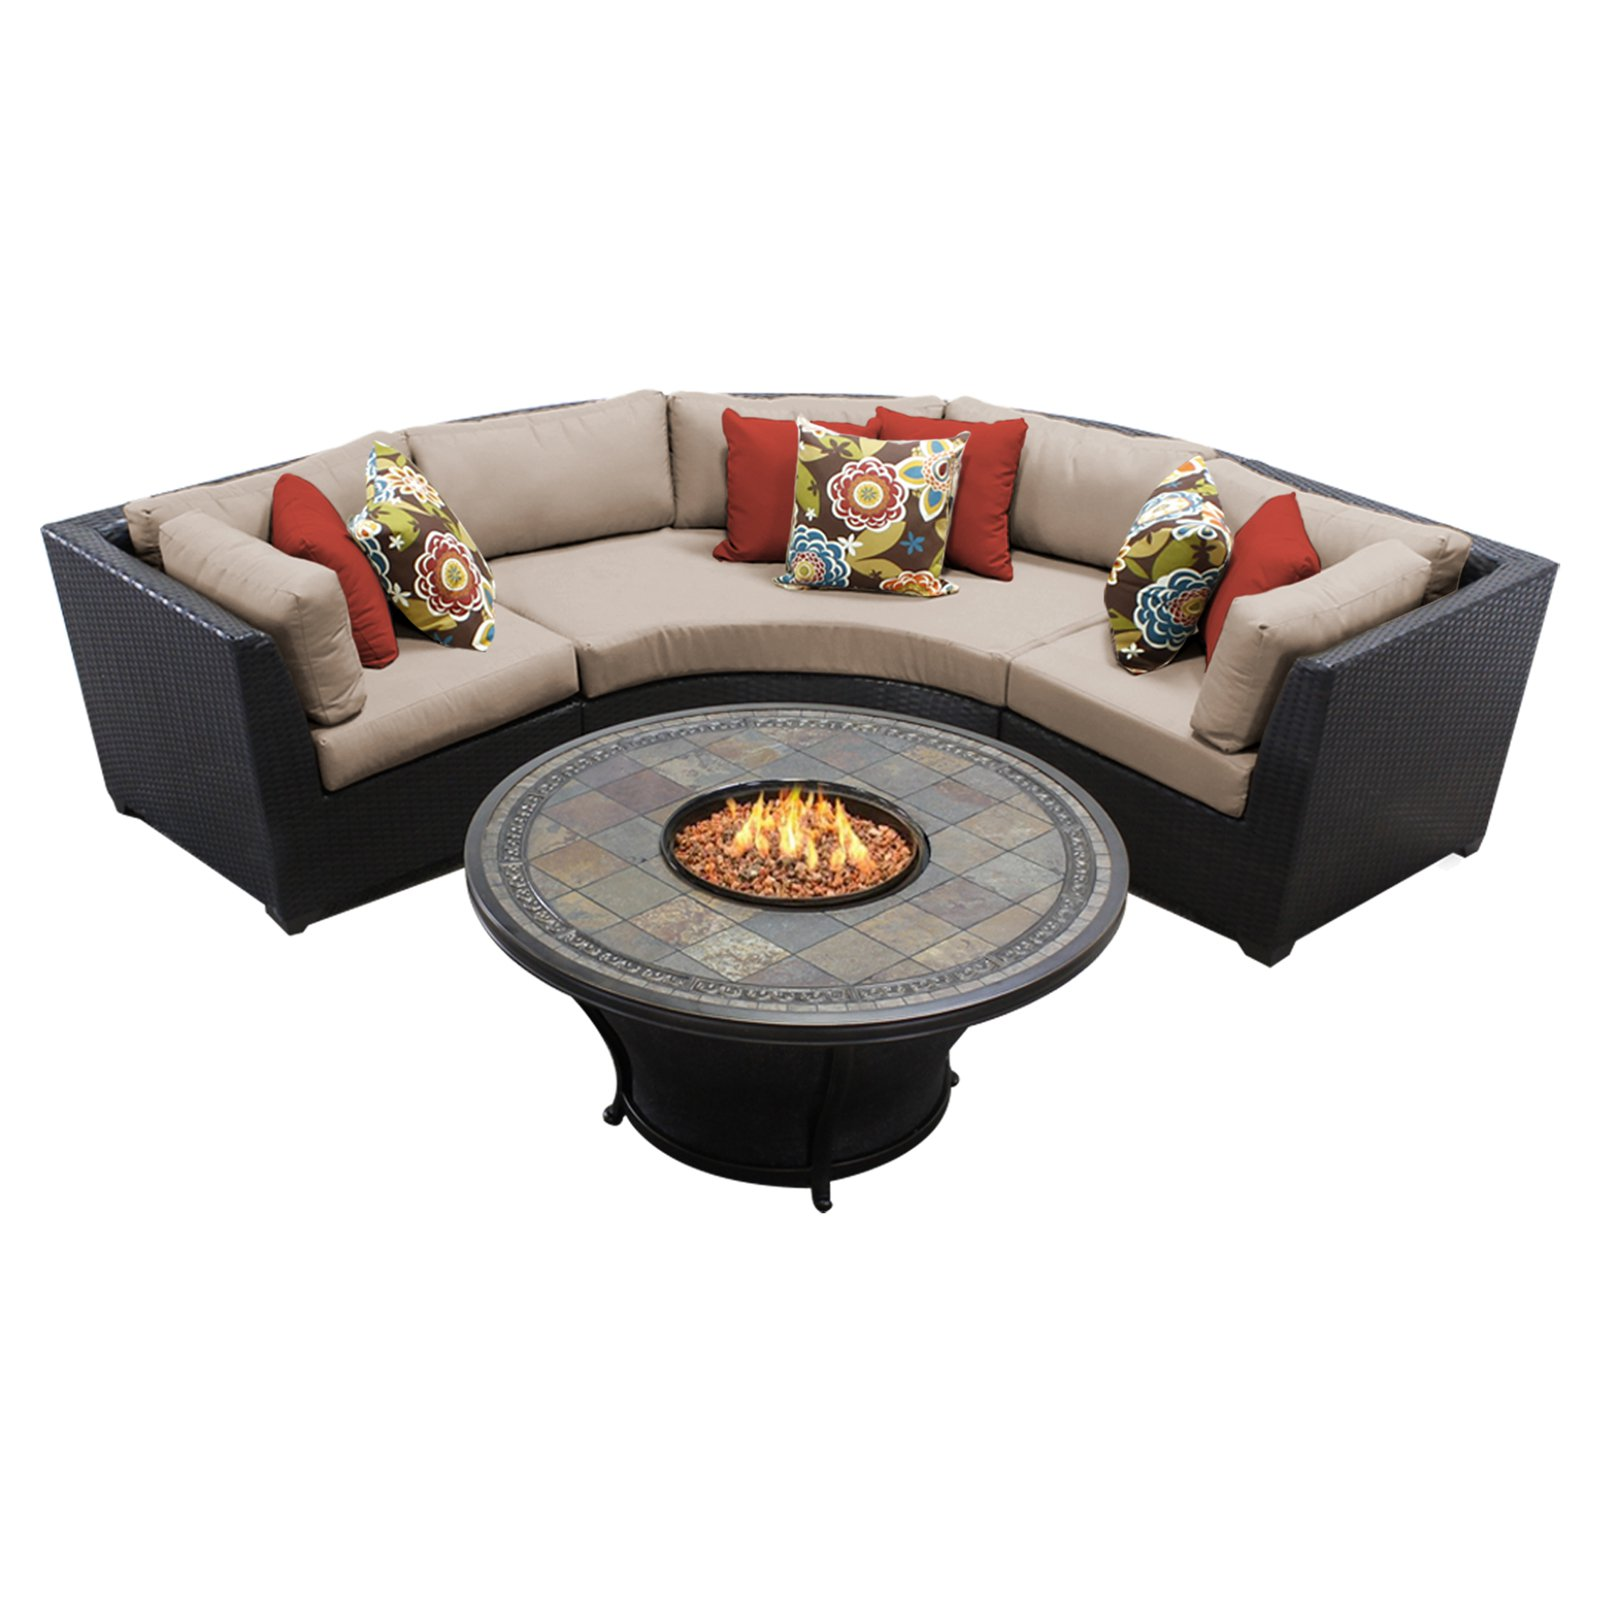 TK Classics Barbados Wicker 4 Piece Patio Conversation Set with Firepit Table and 2 Sets of Cushion Covers by TK Classics